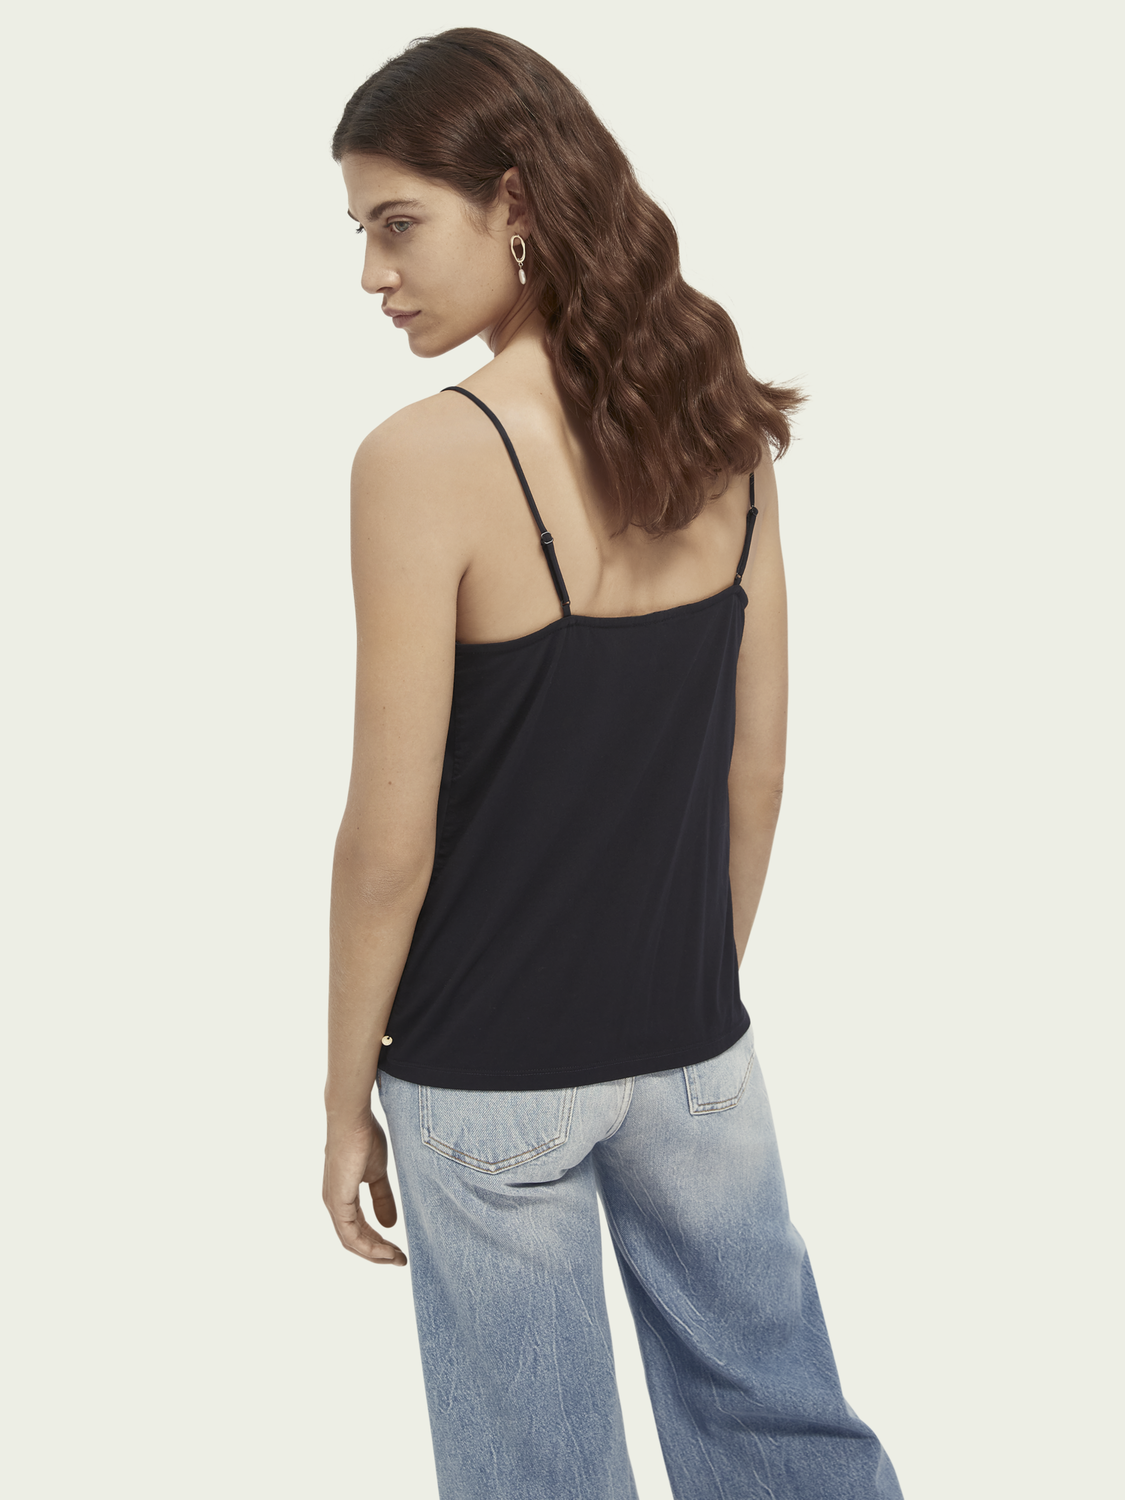 Damer V-neck camisole tank top